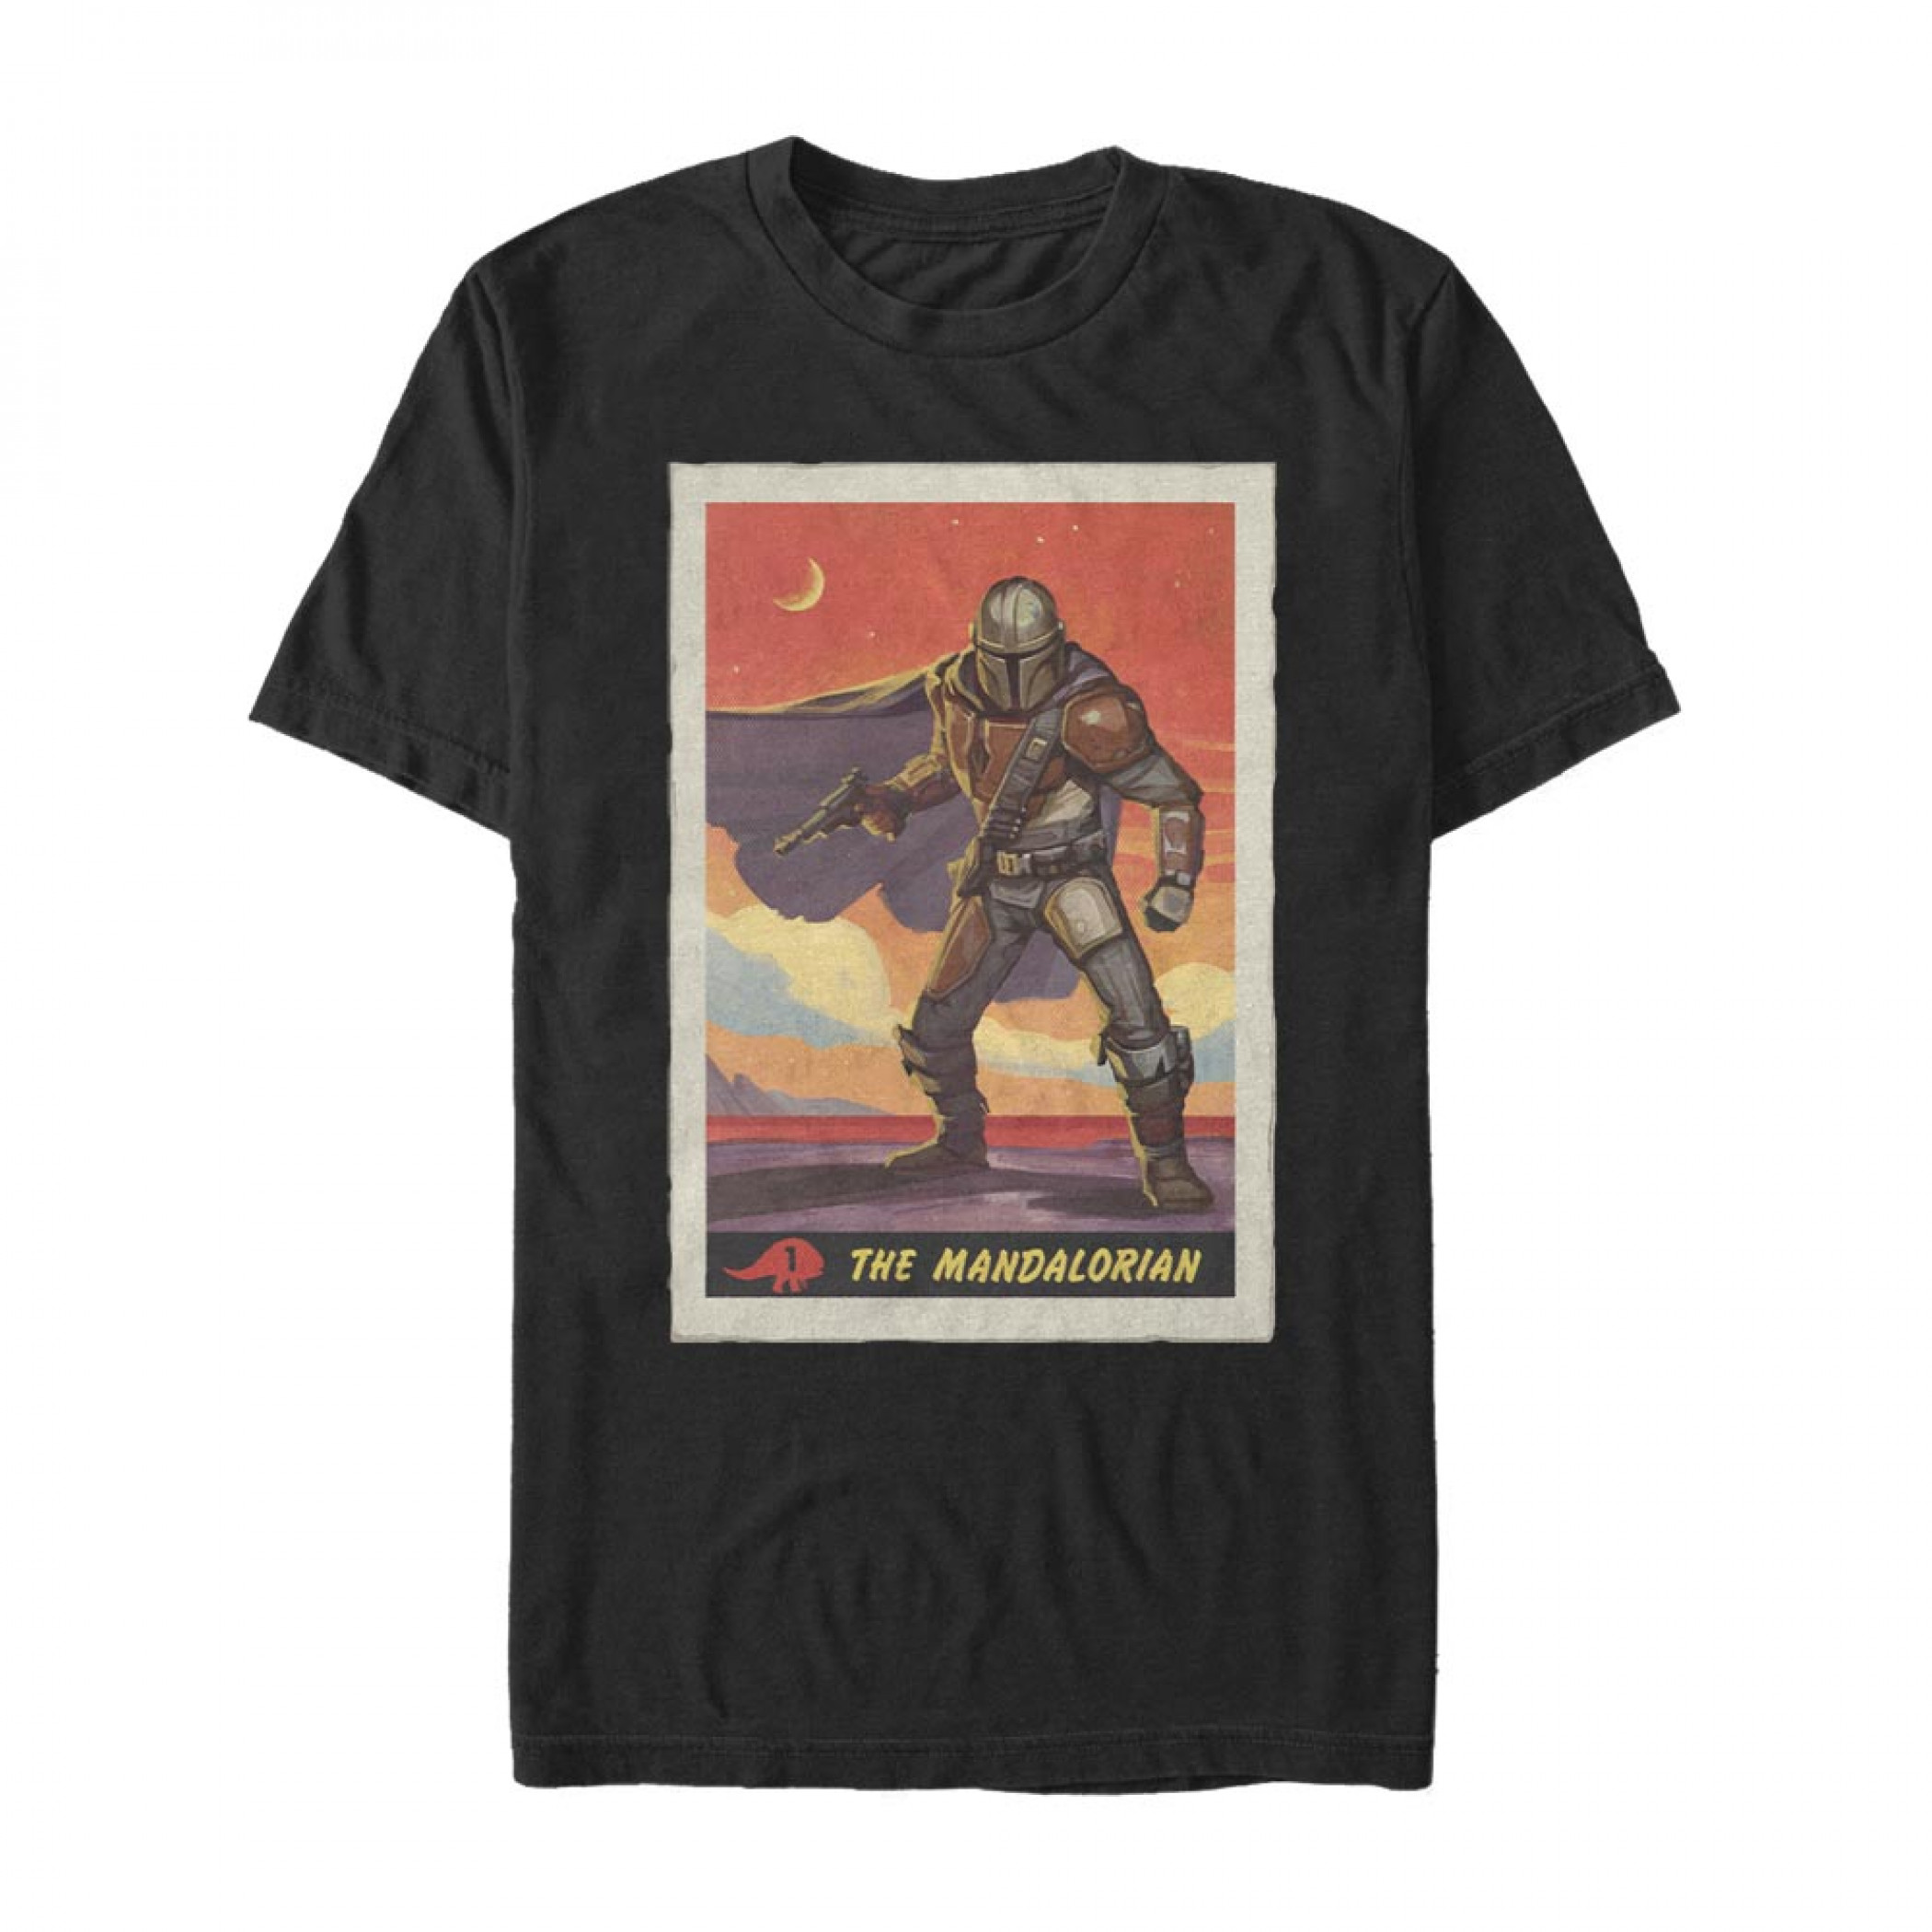 The Mandalorian Trading Card T-Shirt